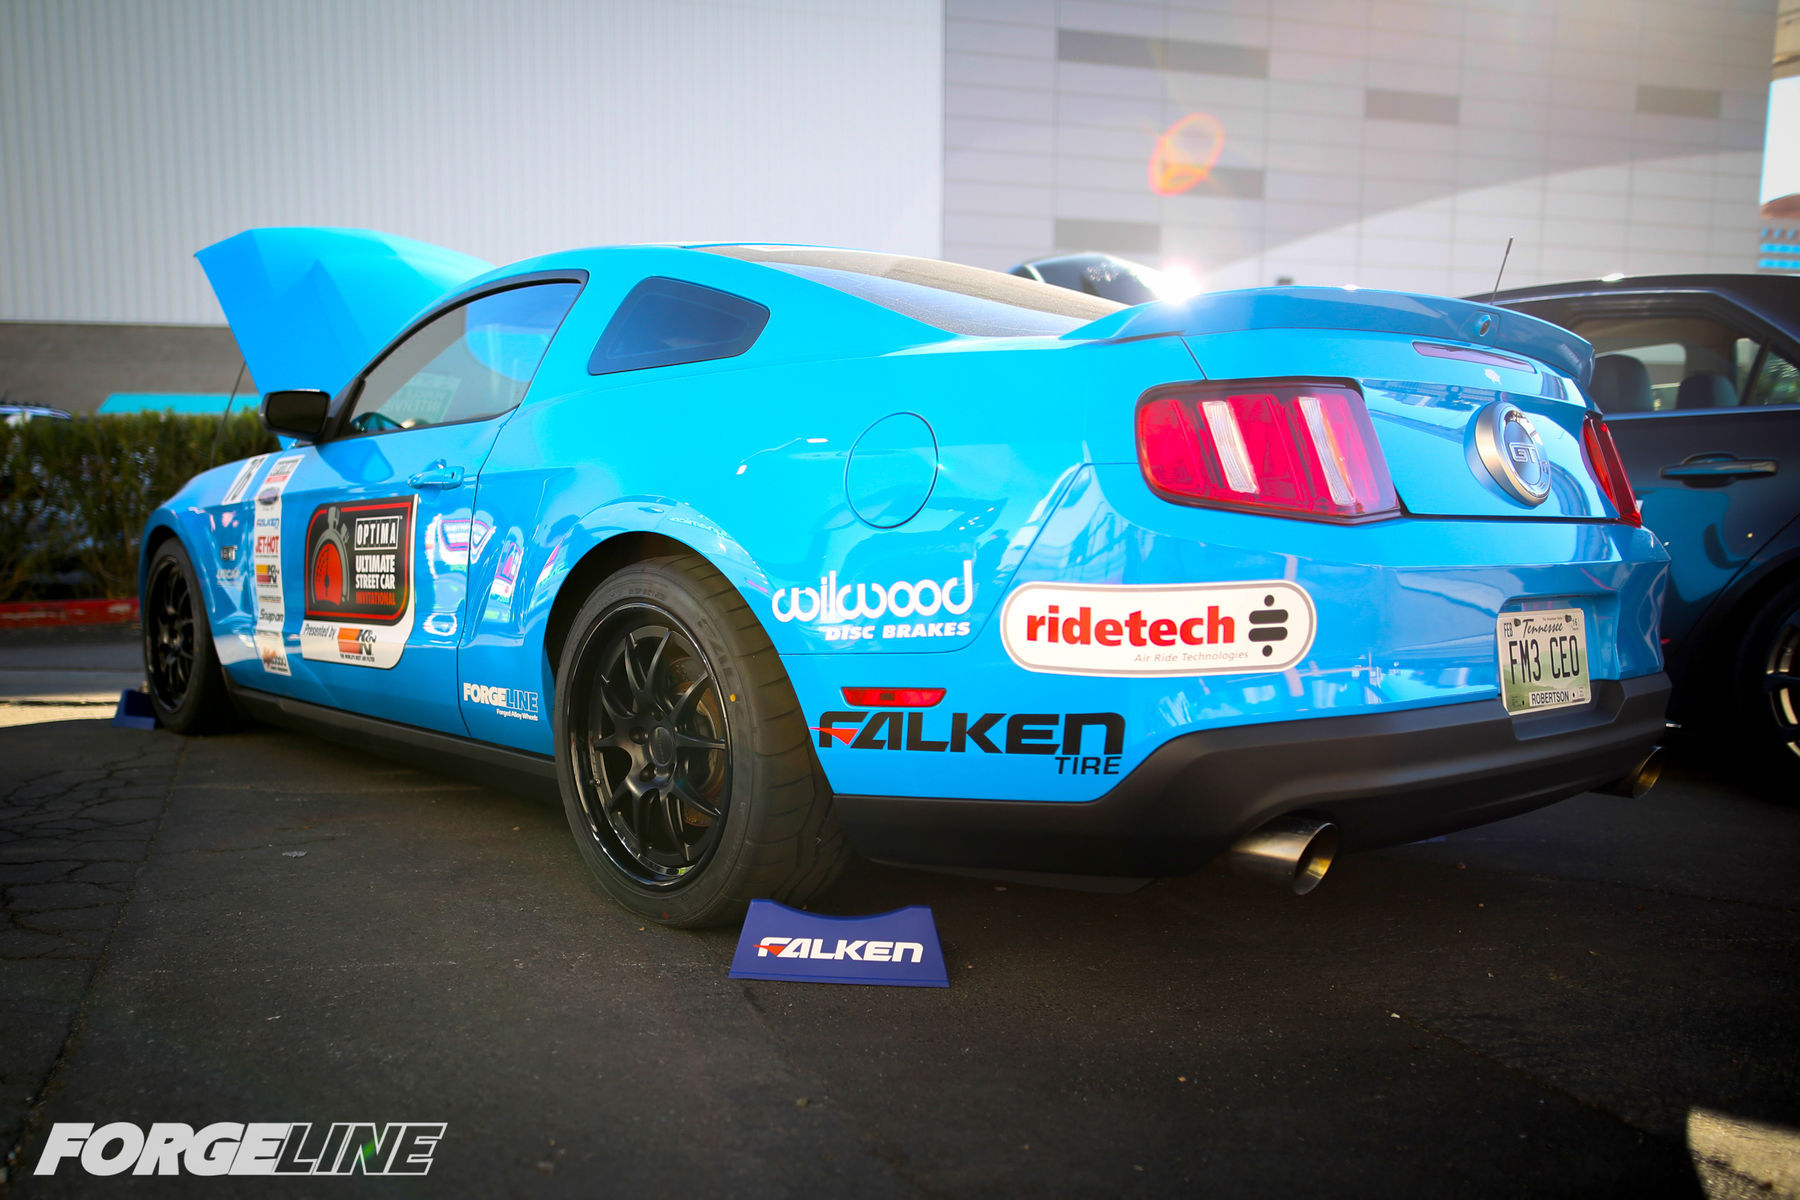 2010 Ford Mustang | Saroja Raman's Grabber Blue S197 Mustang GT on Forgeline GA3 Wheels - Rear Drive Side Shot